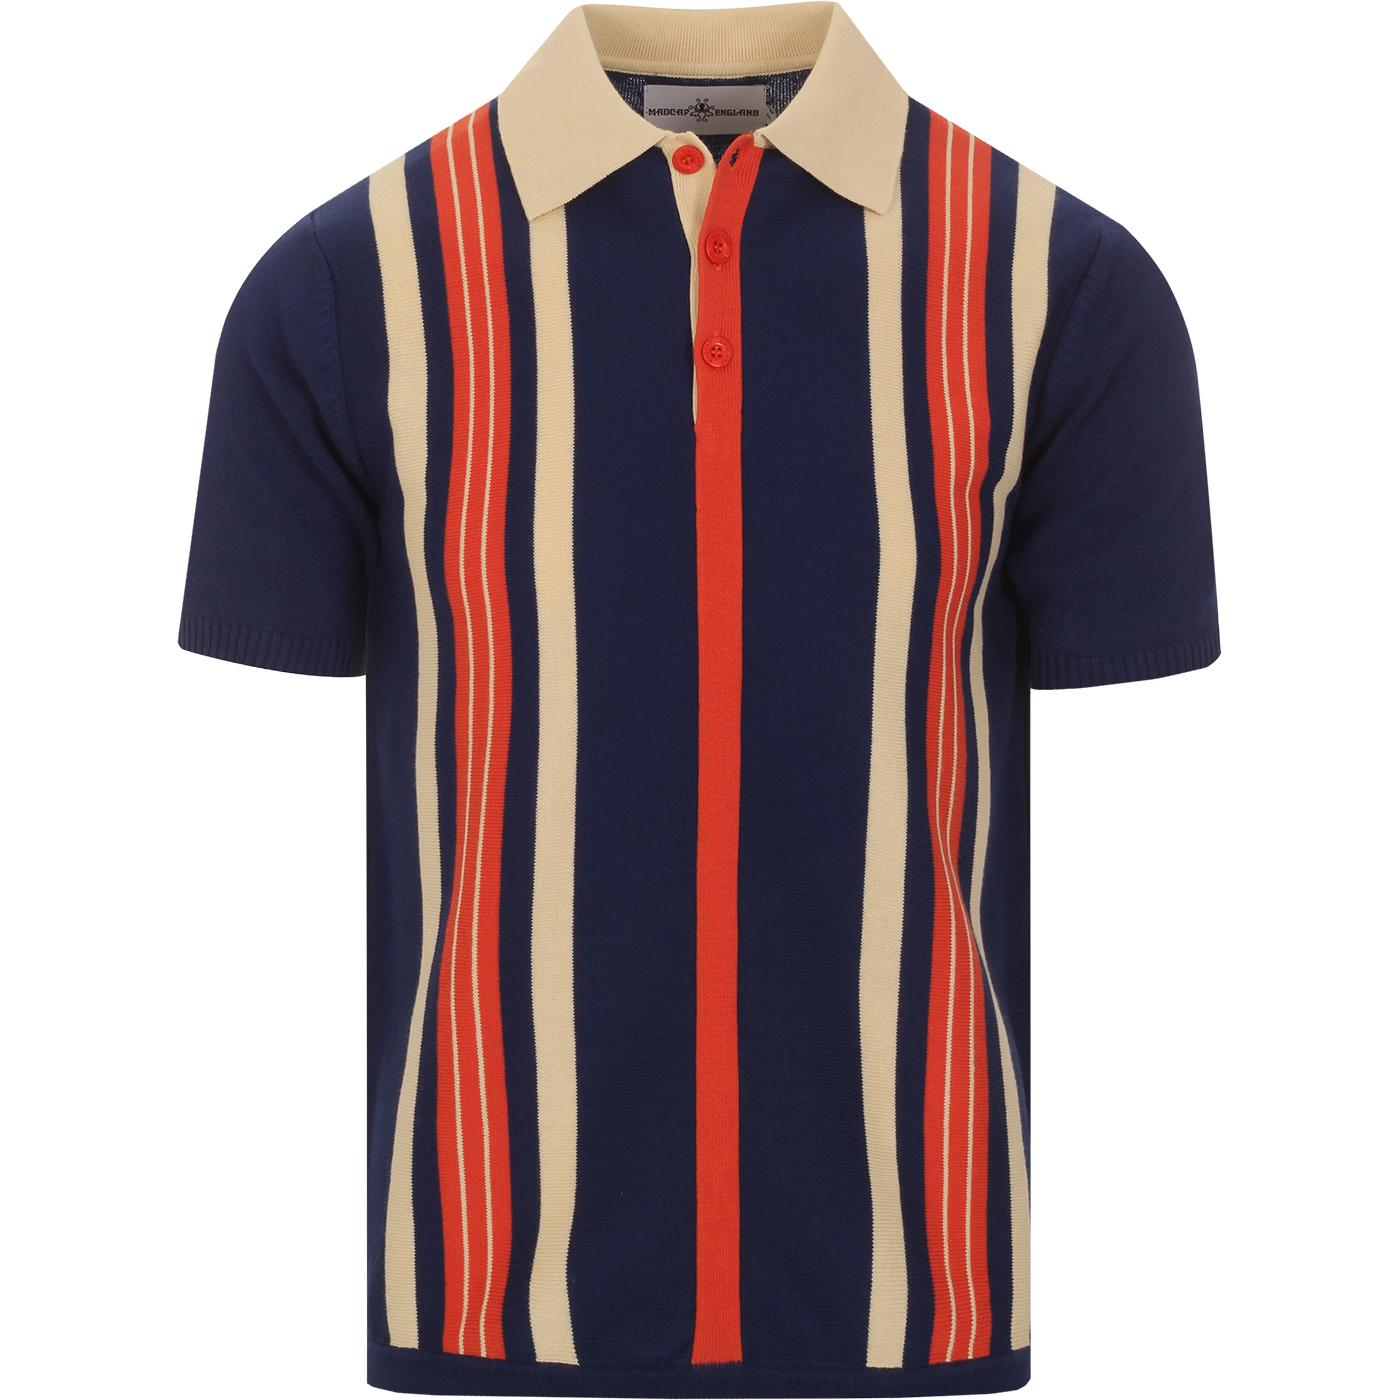 Farlowe MADCAP ENGLAND Mod Stripe Knit Polo Top